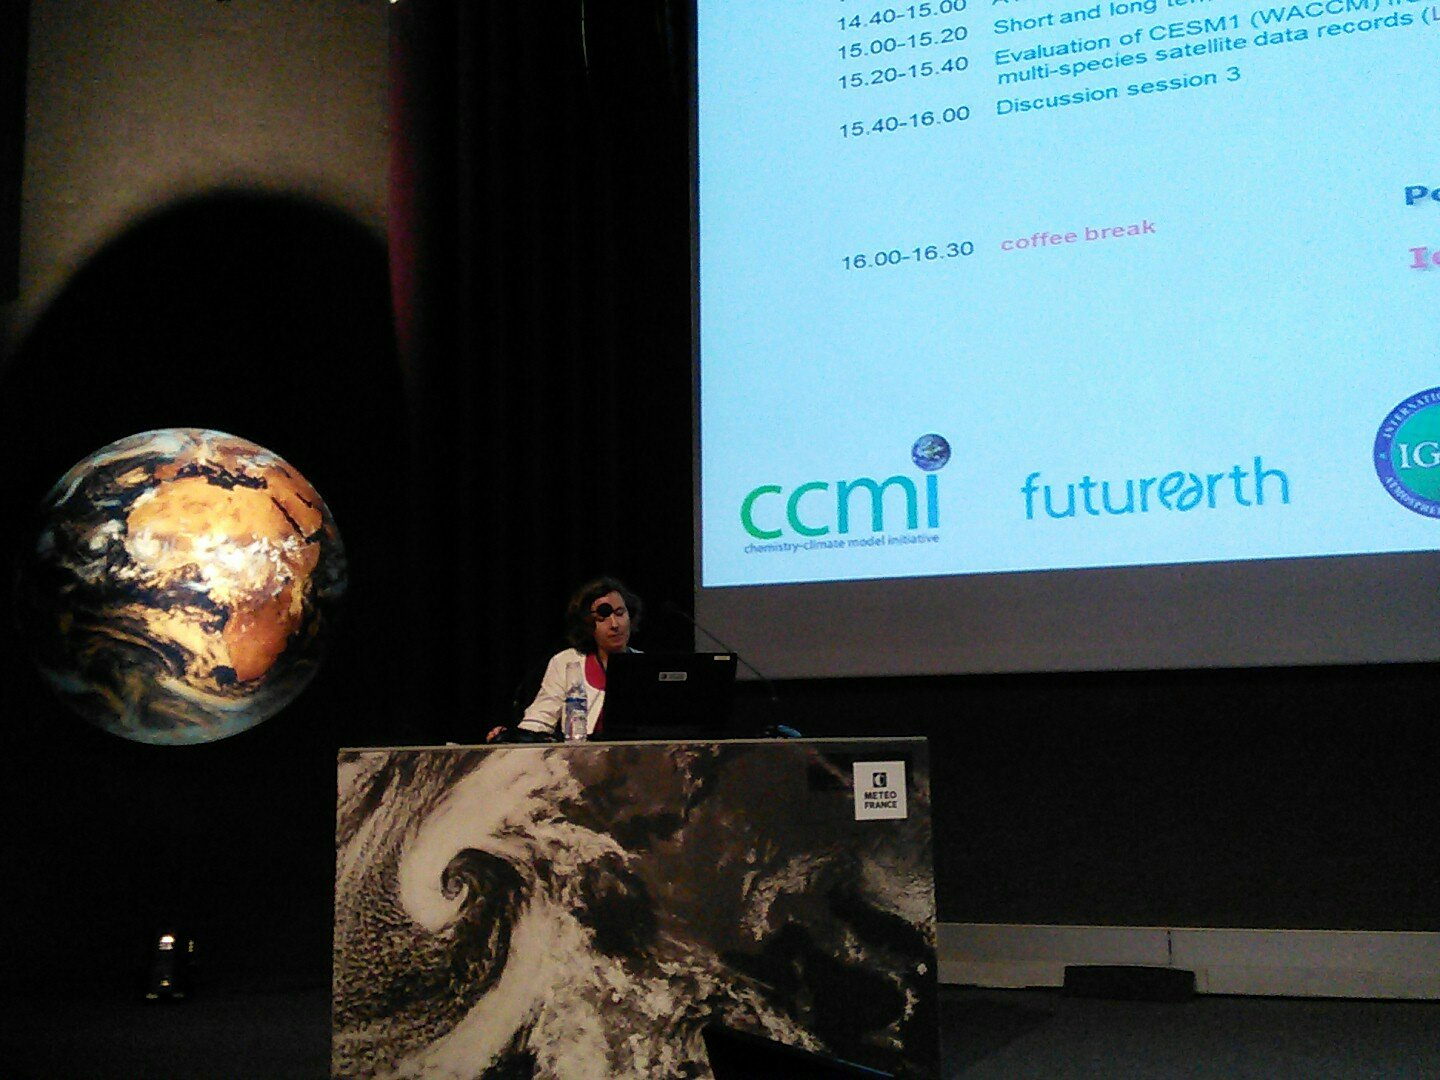 """#ccmi2017 scientific meeting kicking off to good start. Béatrice Josse: """"We are trying to host you as warmly as possible"""". Temp 25C outside! https://t.co/Yf83OJzsA1"""